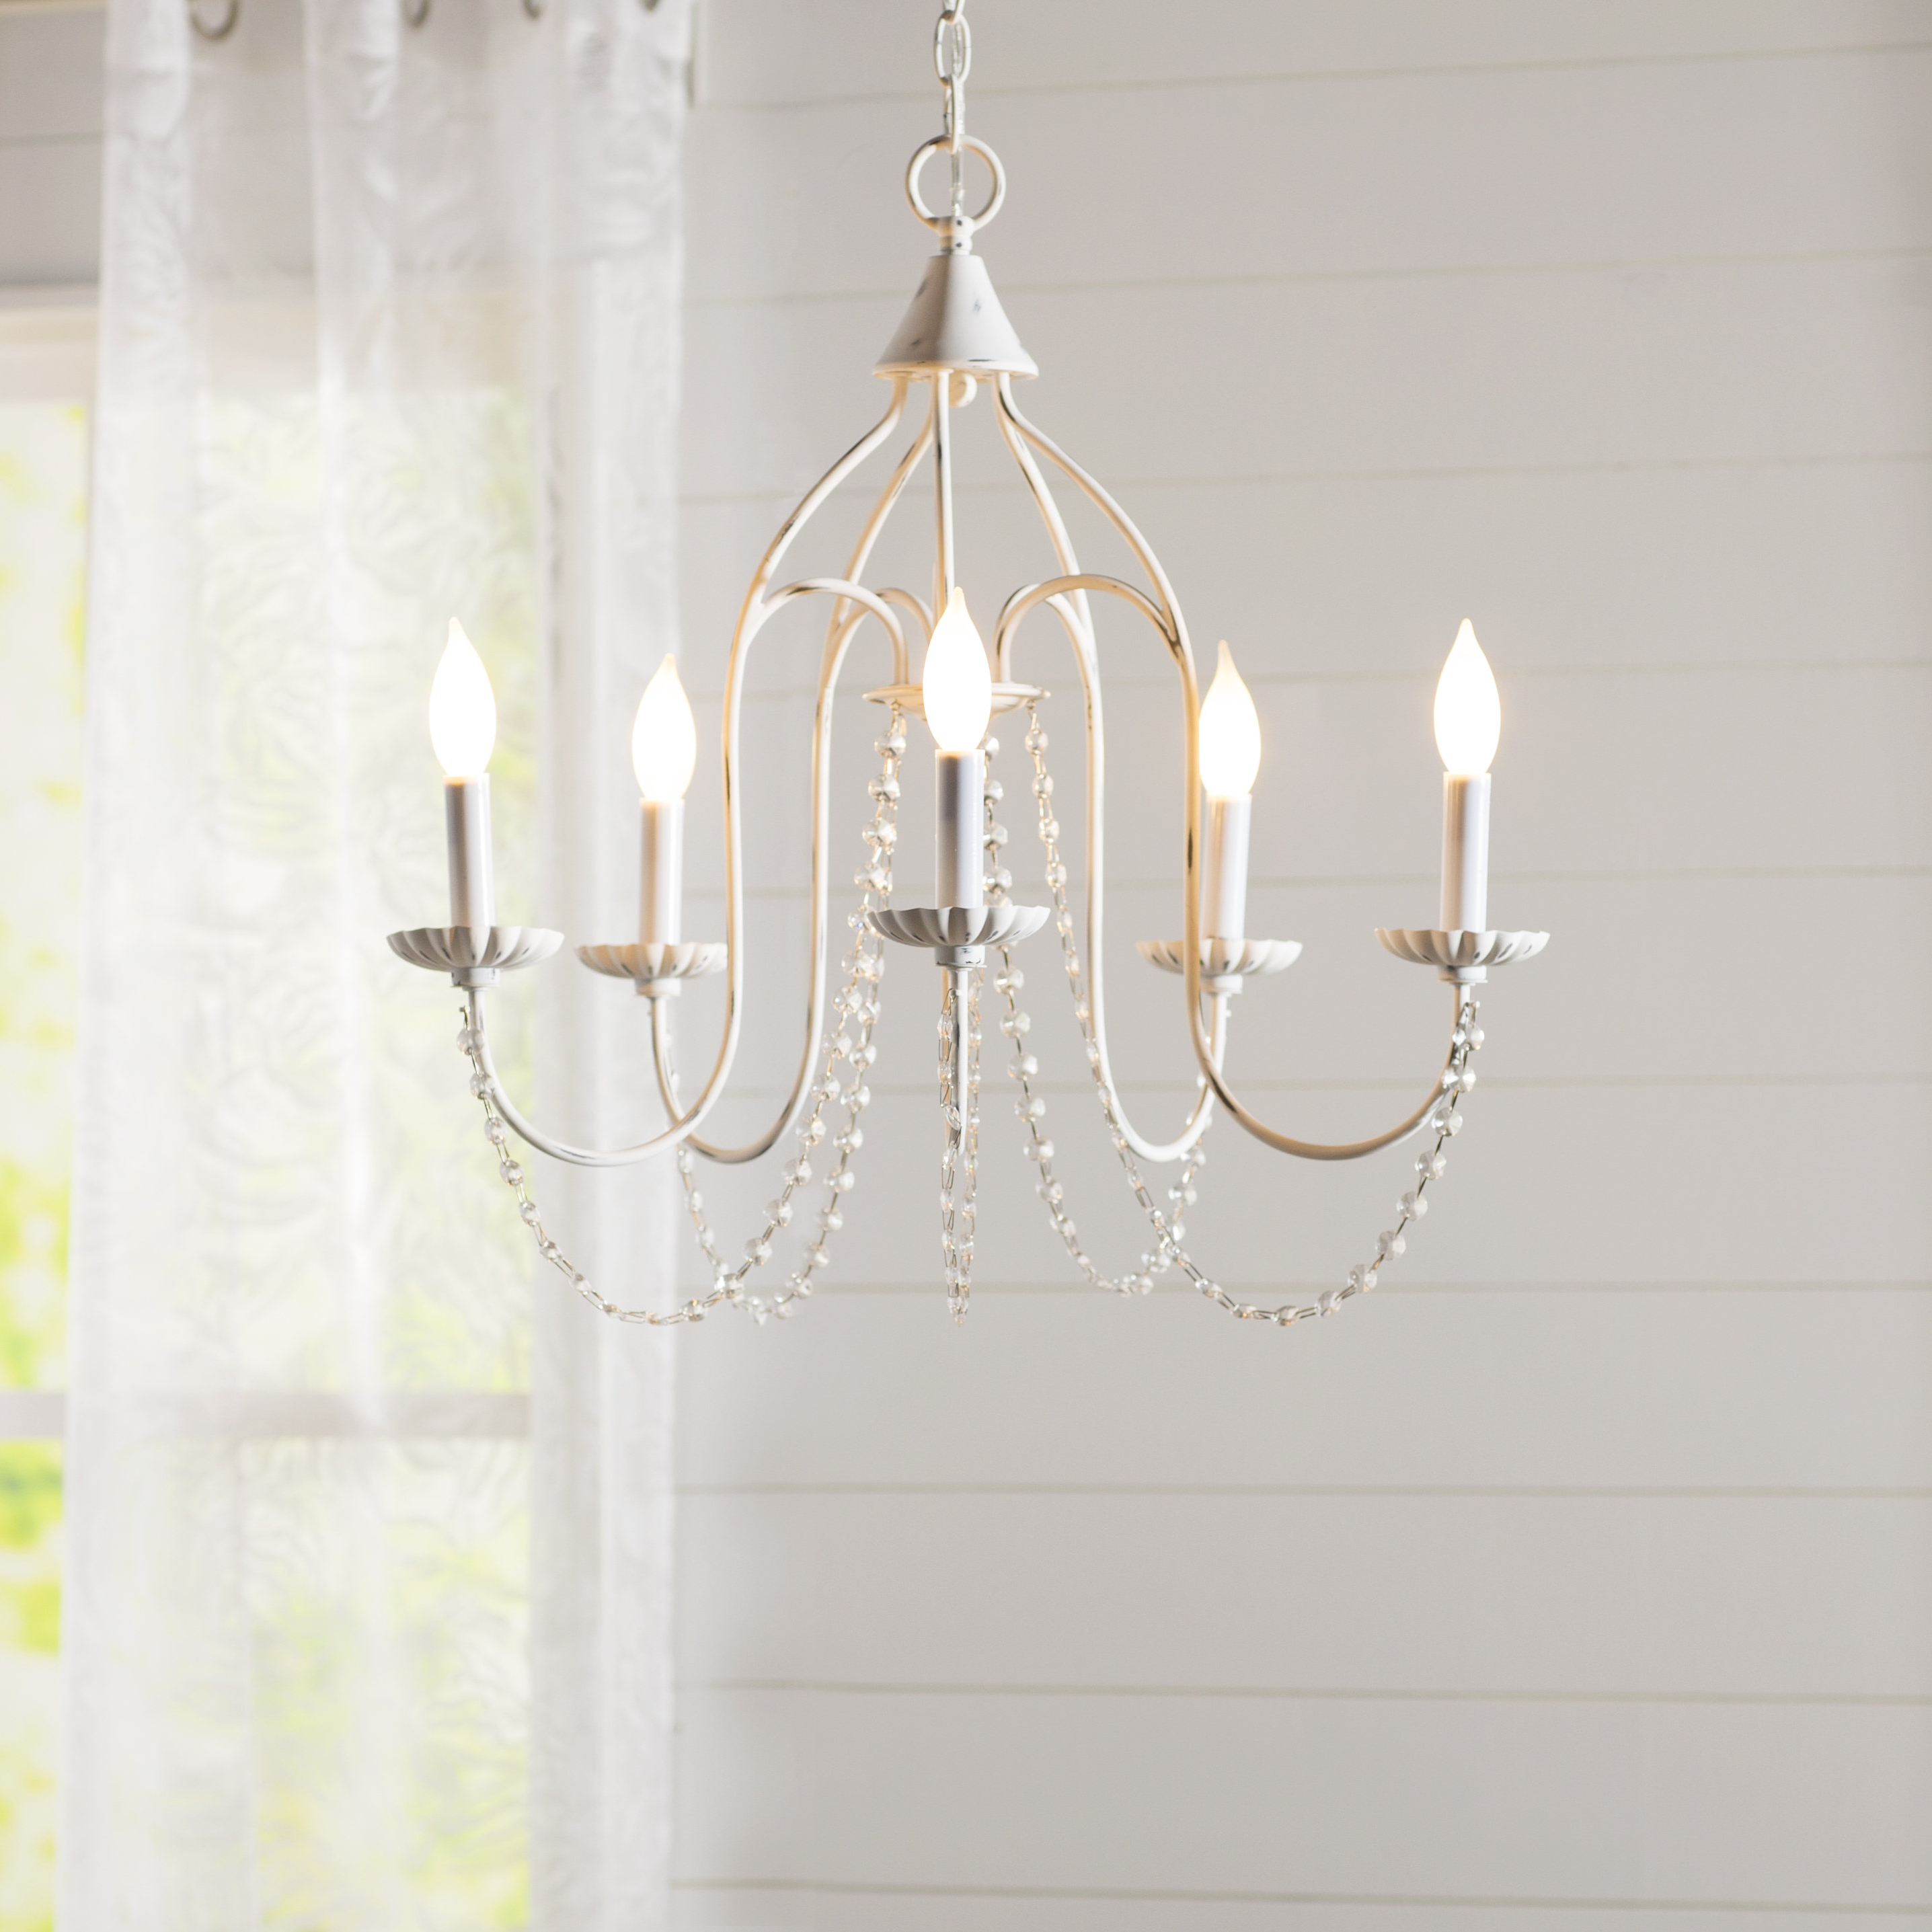 Florentina 5 Light Candle Style Chandelier With Regard To Preferred Shaylee 5 Light Candle Style Chandeliers (View 4 of 25)